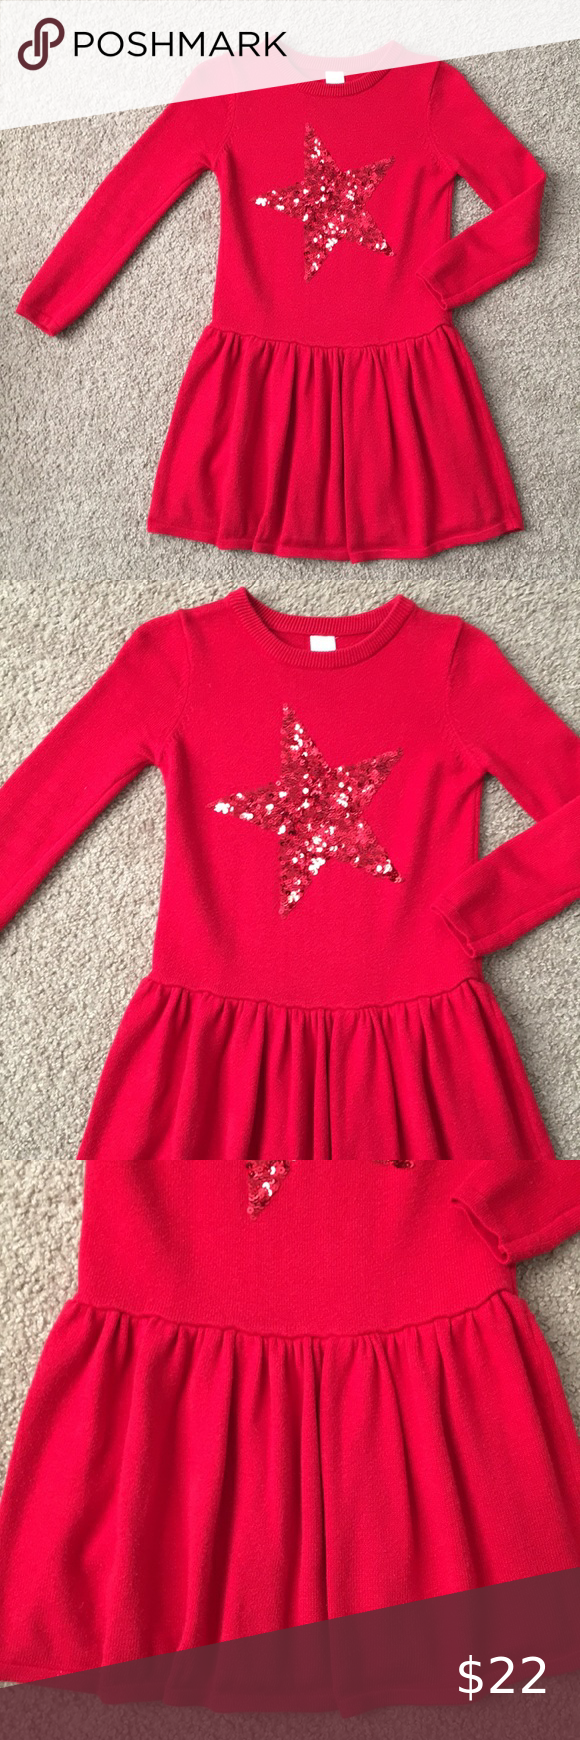 Carter S Toddler Girl Cable Knit Dress Red Cable Knit Sweater Dress Knit Sweater Dress Cable Knit Dress [ 1467 x 1200 Pixel ]